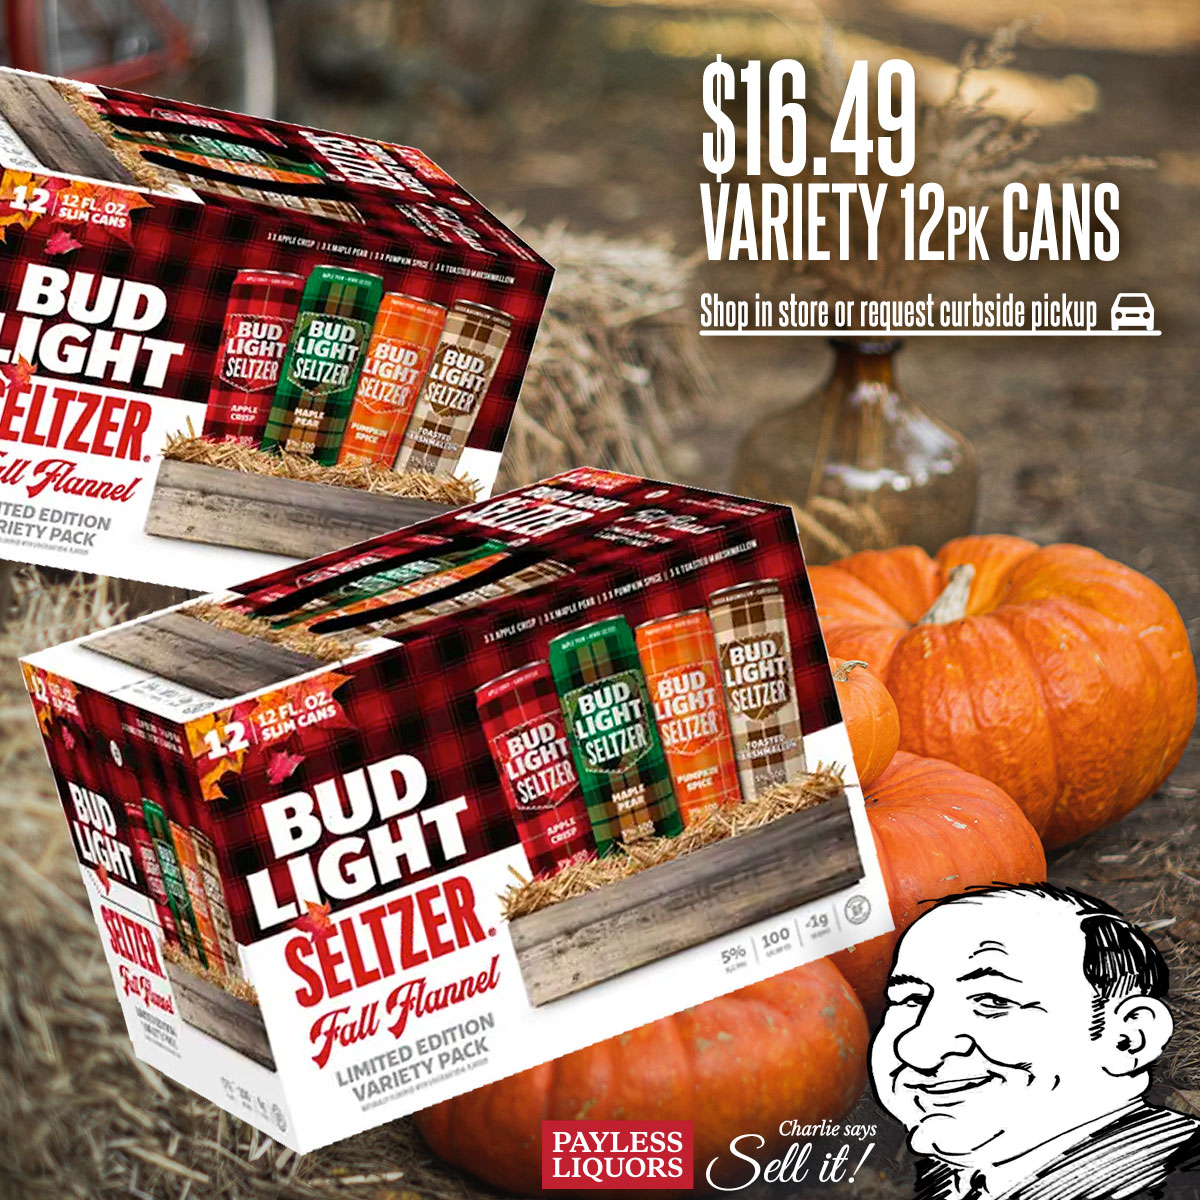 Bud Light Seltzer Fall Flannel Edition Variety 12 Pack